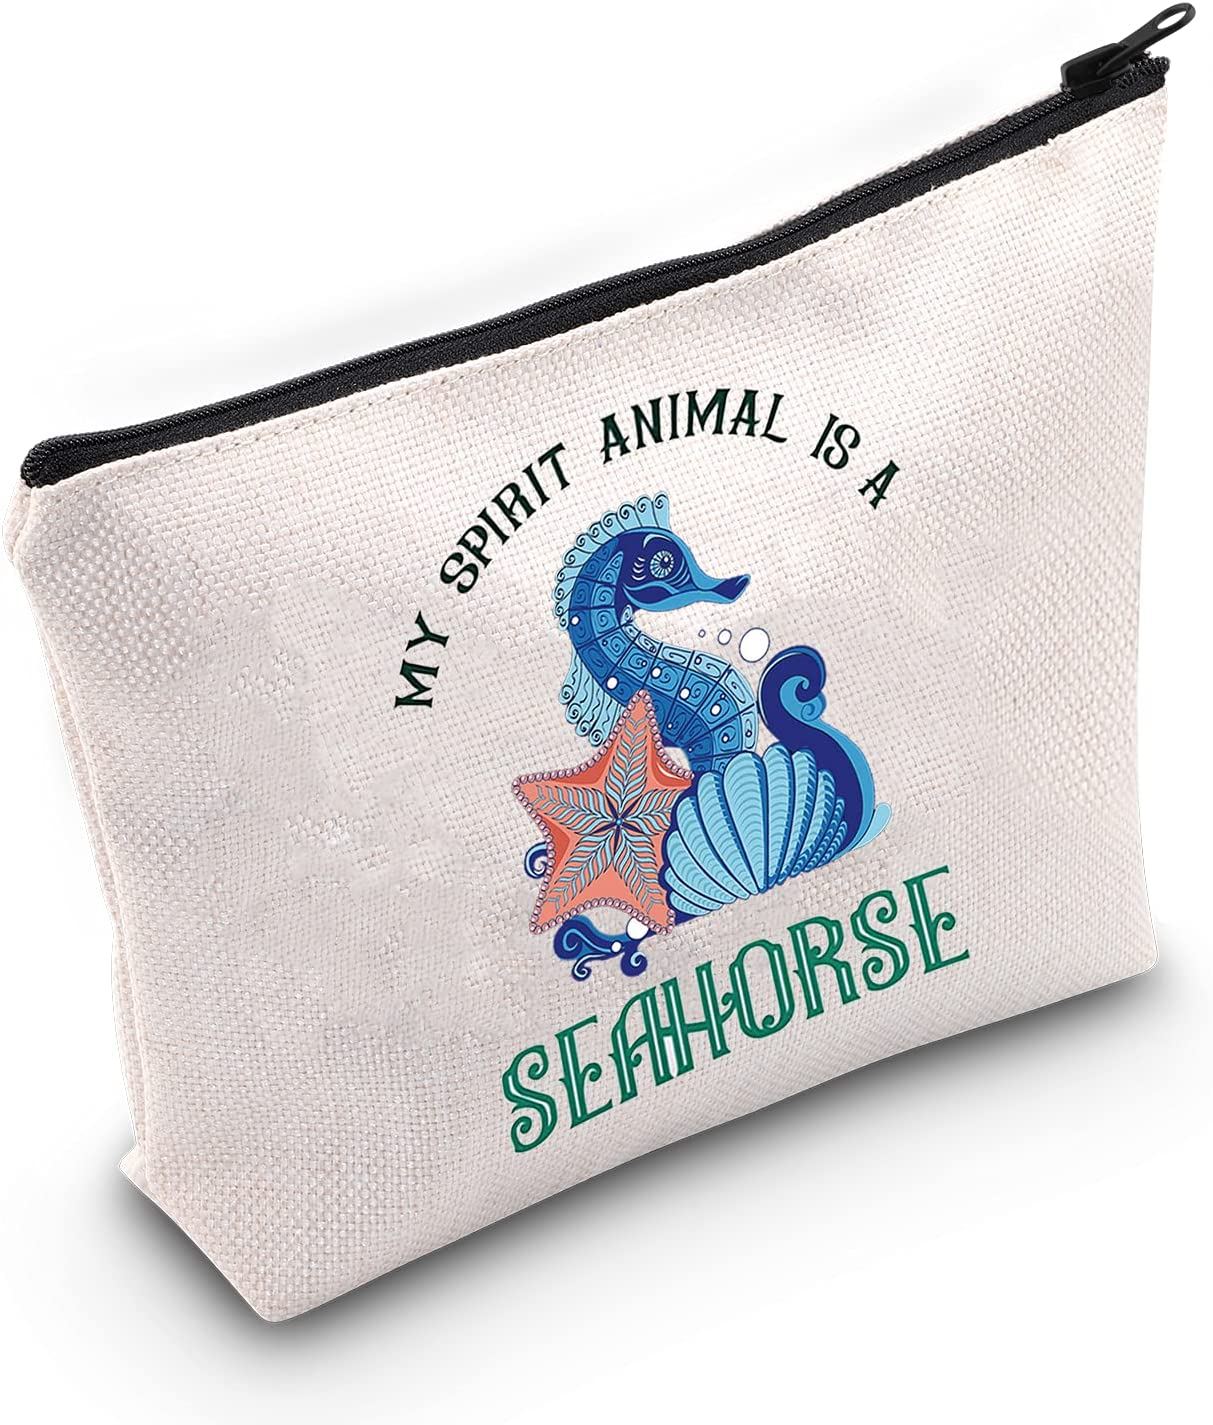 LEVLO Max 62% OFF Funny Selling and selling Seahorse Cosmetic Make Up Bag My Lover Gift